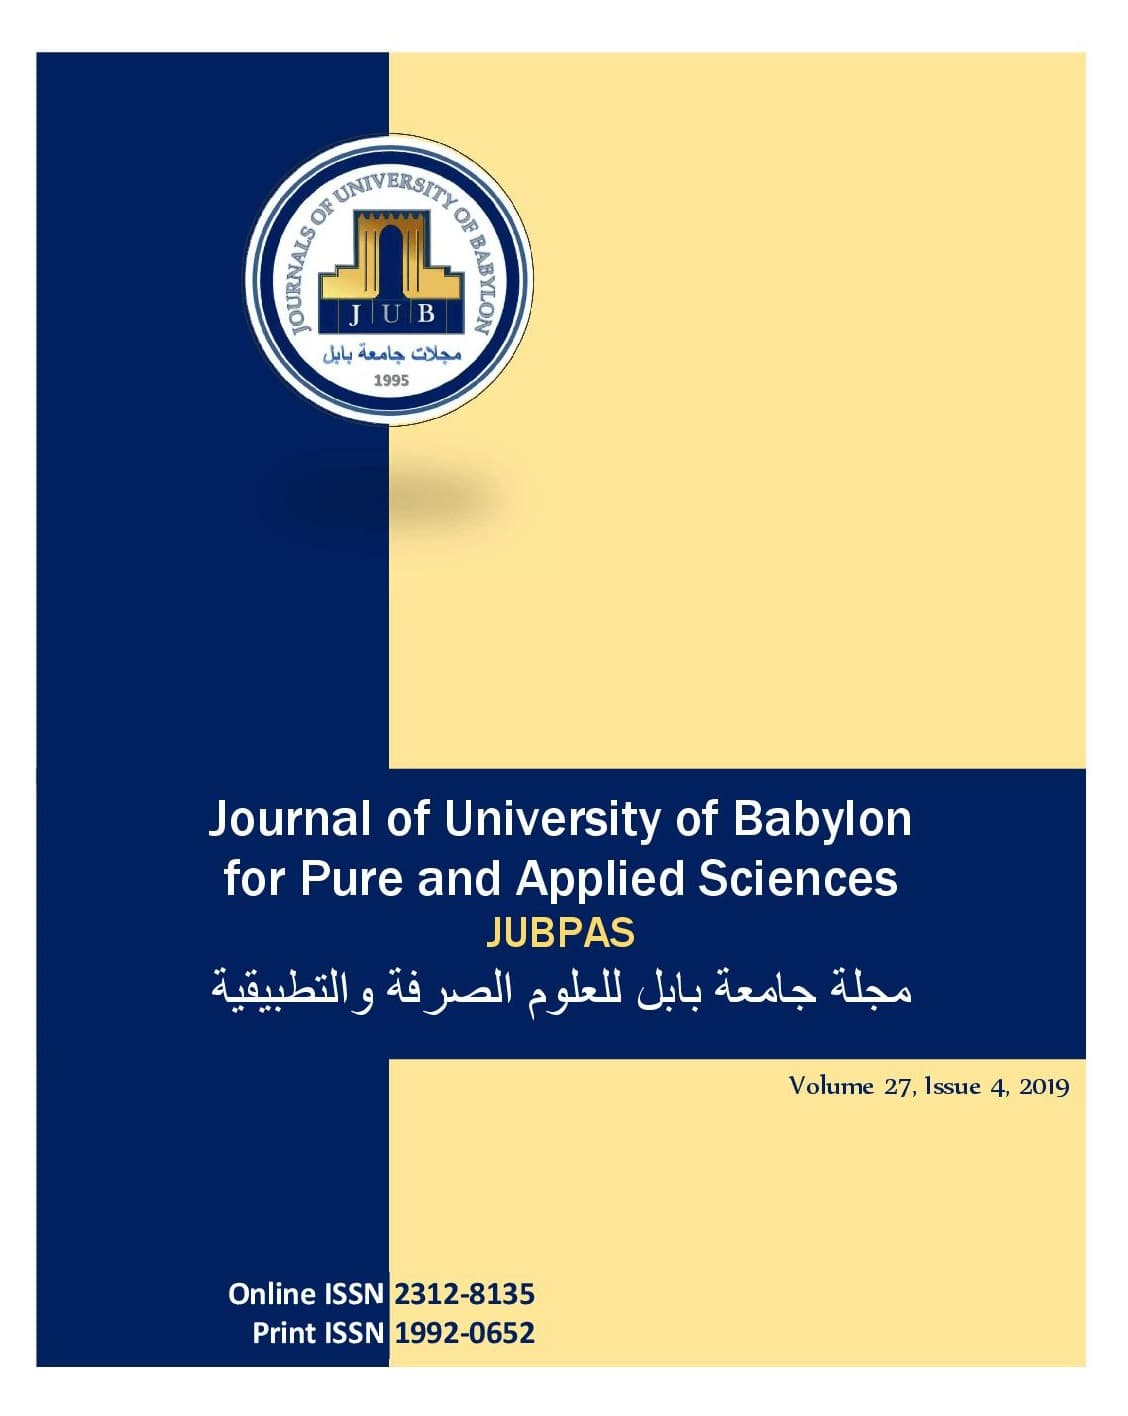 JUBPAS, vol. 27, no. 4, 2019